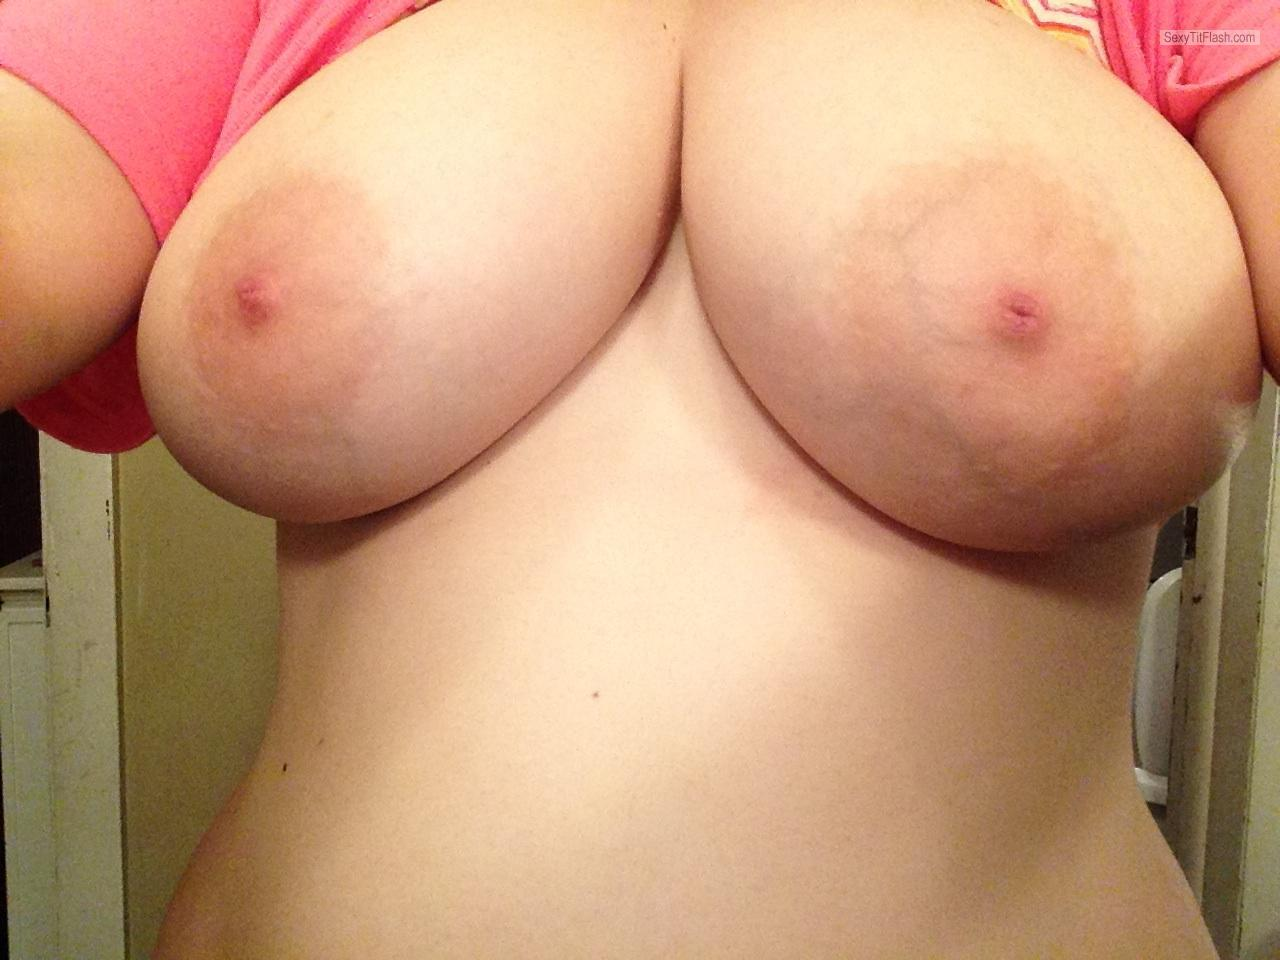 Tit Flash: Ex-Girlfriend's Very Big Tits (Selfie) - Kaylee from United States